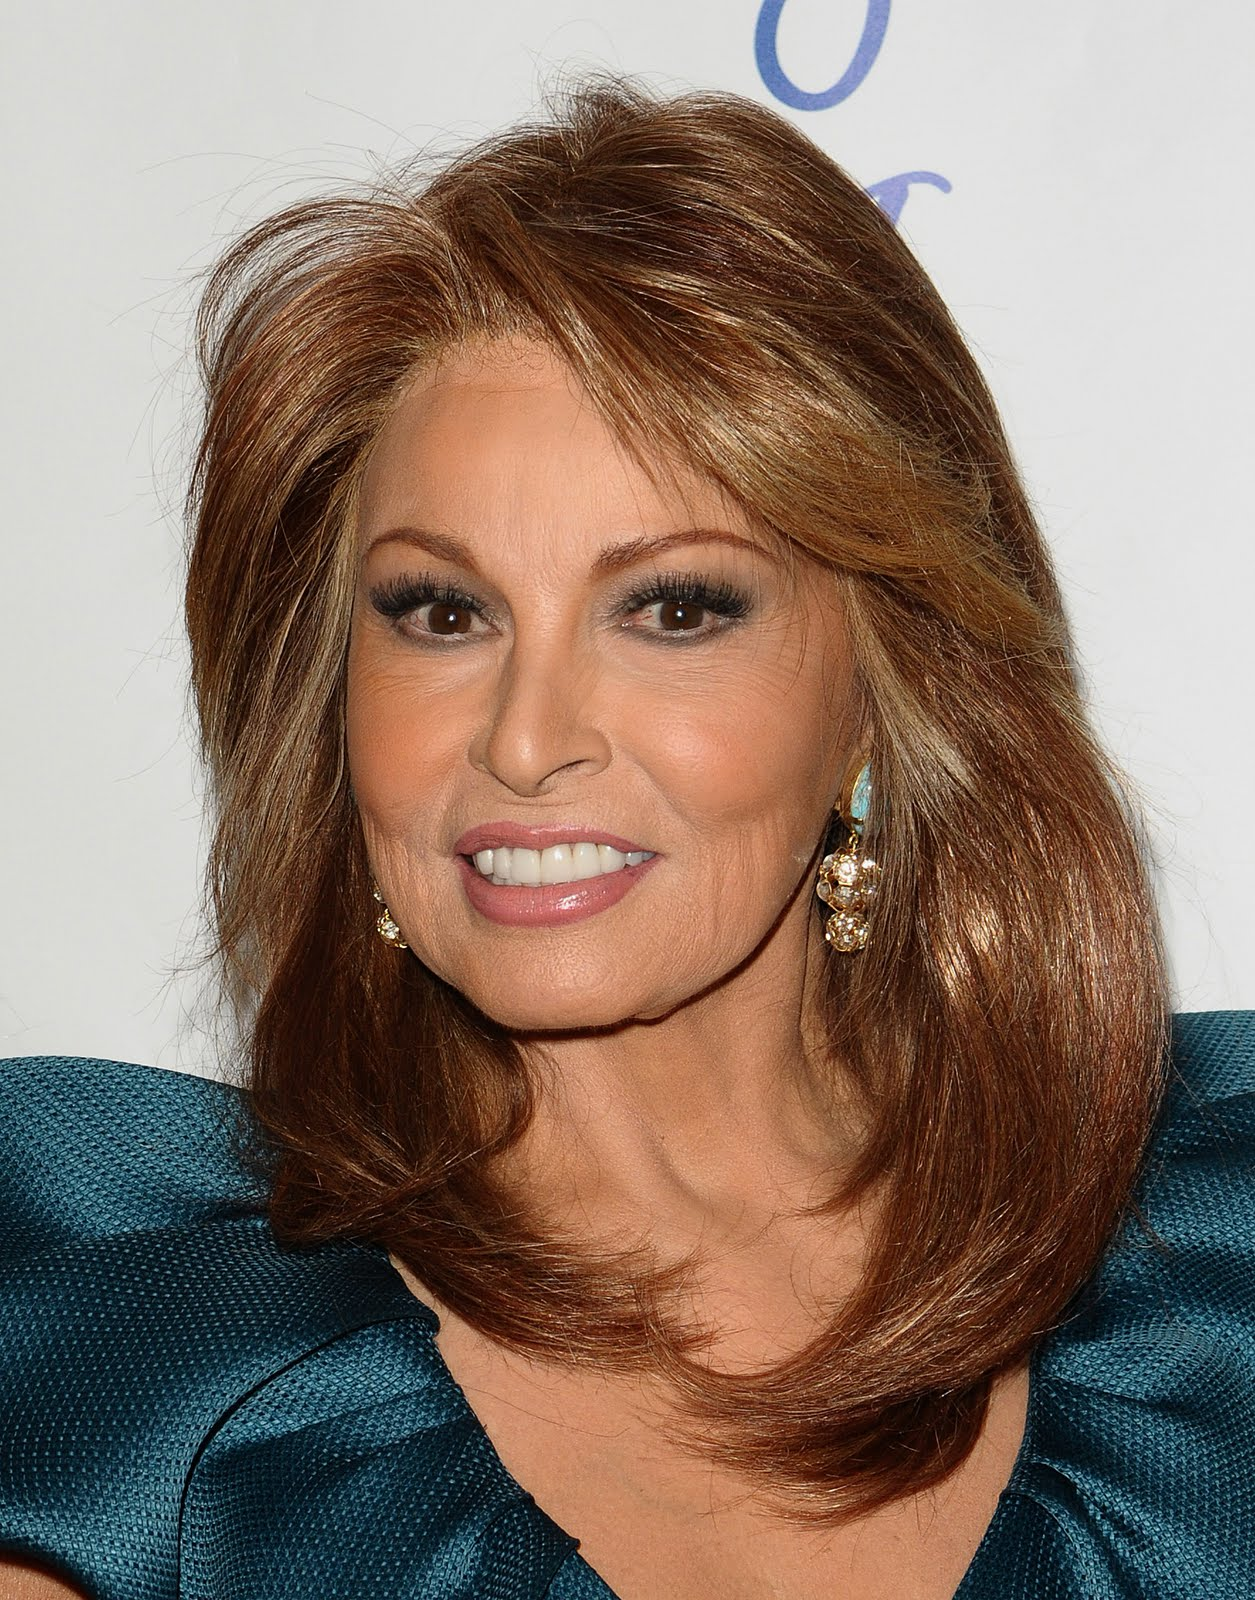 Displaying 19 gt  Images For - Raquel Welch Now And Then   Raquel Welch Now And Then